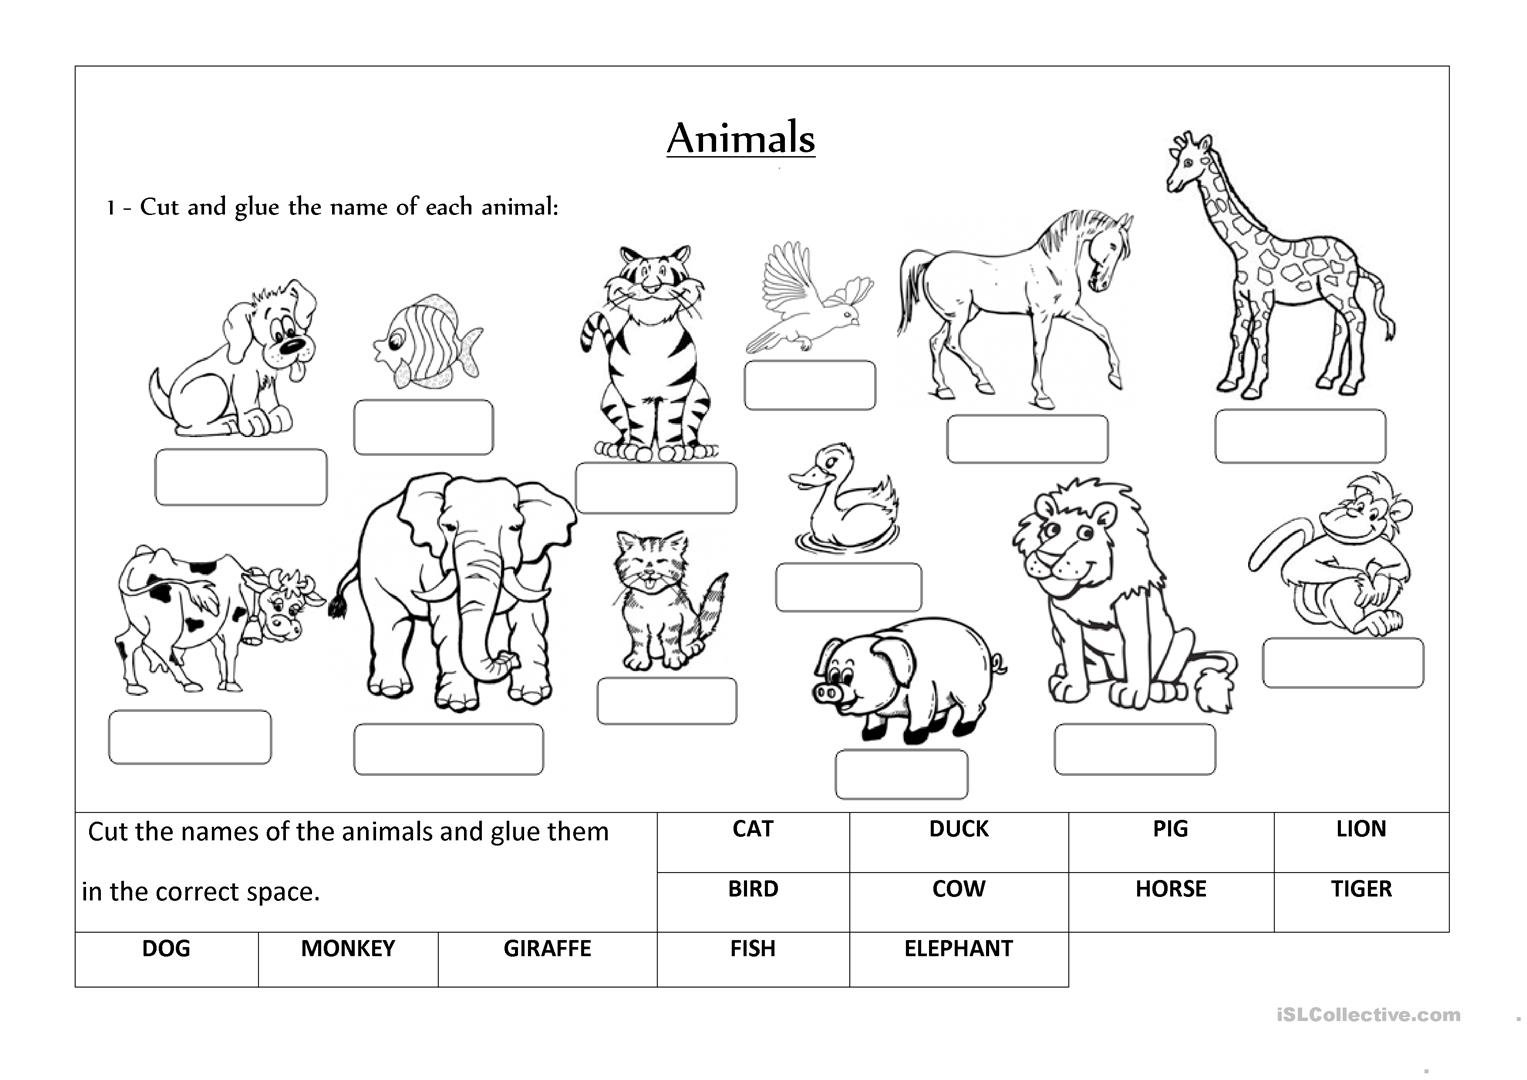 Animals Label And Classify Worksheet  Free Esl Printable Worksheets Within Animal Classification Worksheet Pdf